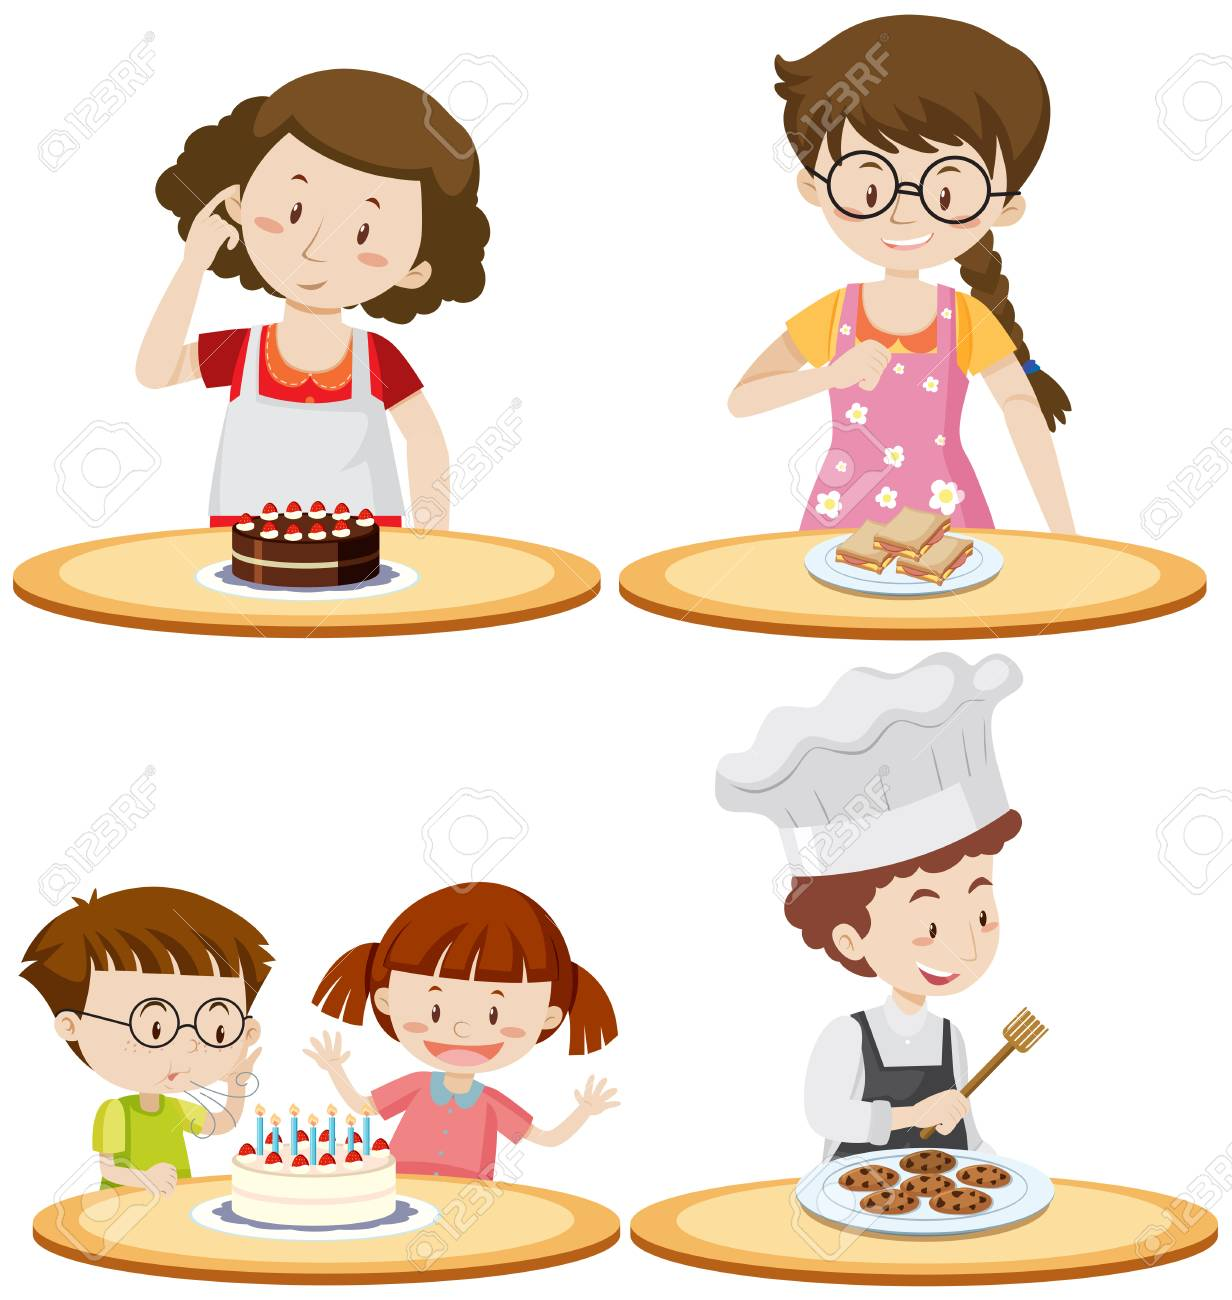 People and different food on tables illustration - 94422426